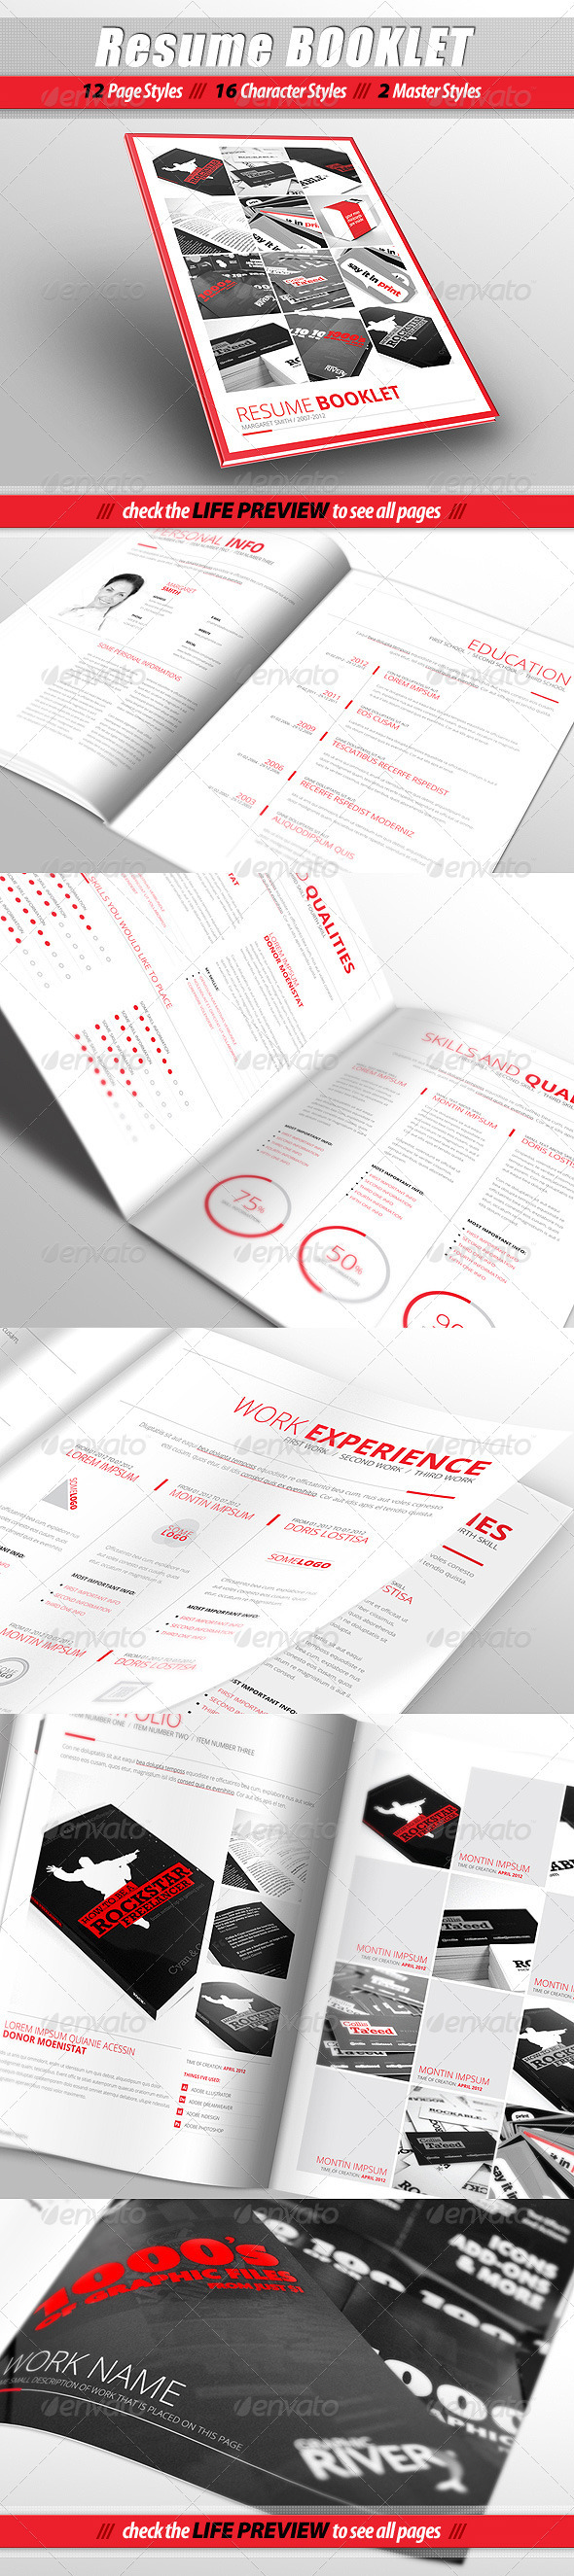 15 Simple and Advanced Resume / CV Templates - Best Designers